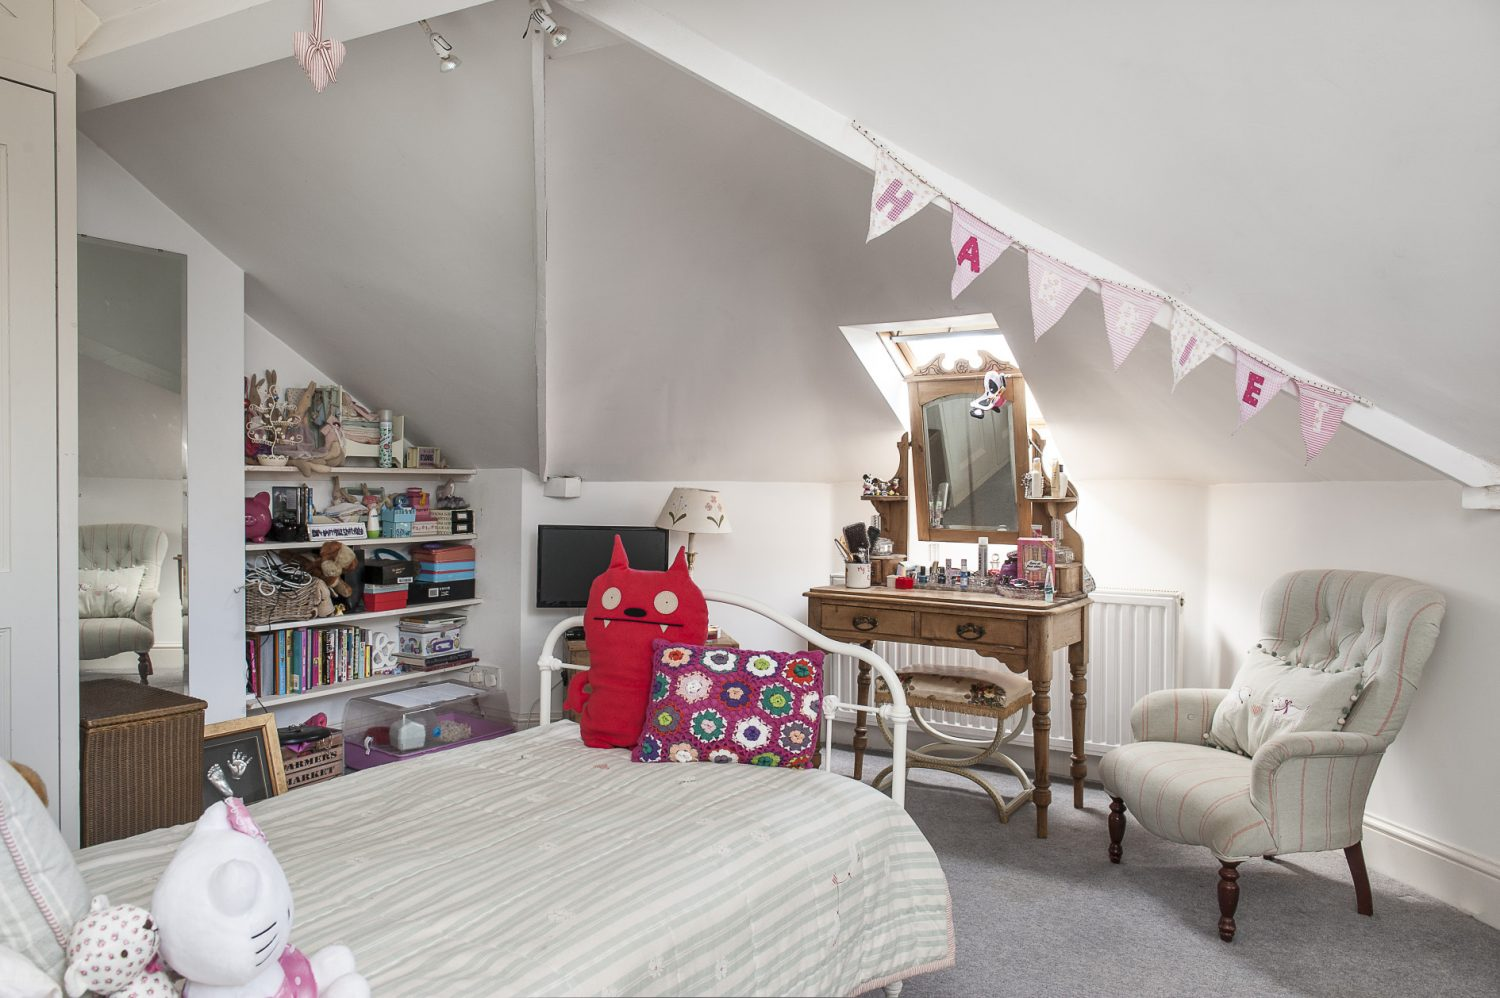 In the eaves is younger daughter Harriet's room which features pink bunting, an antique white iron bedstead with a Susie Watson coverlet and a Victorian pine dressing table